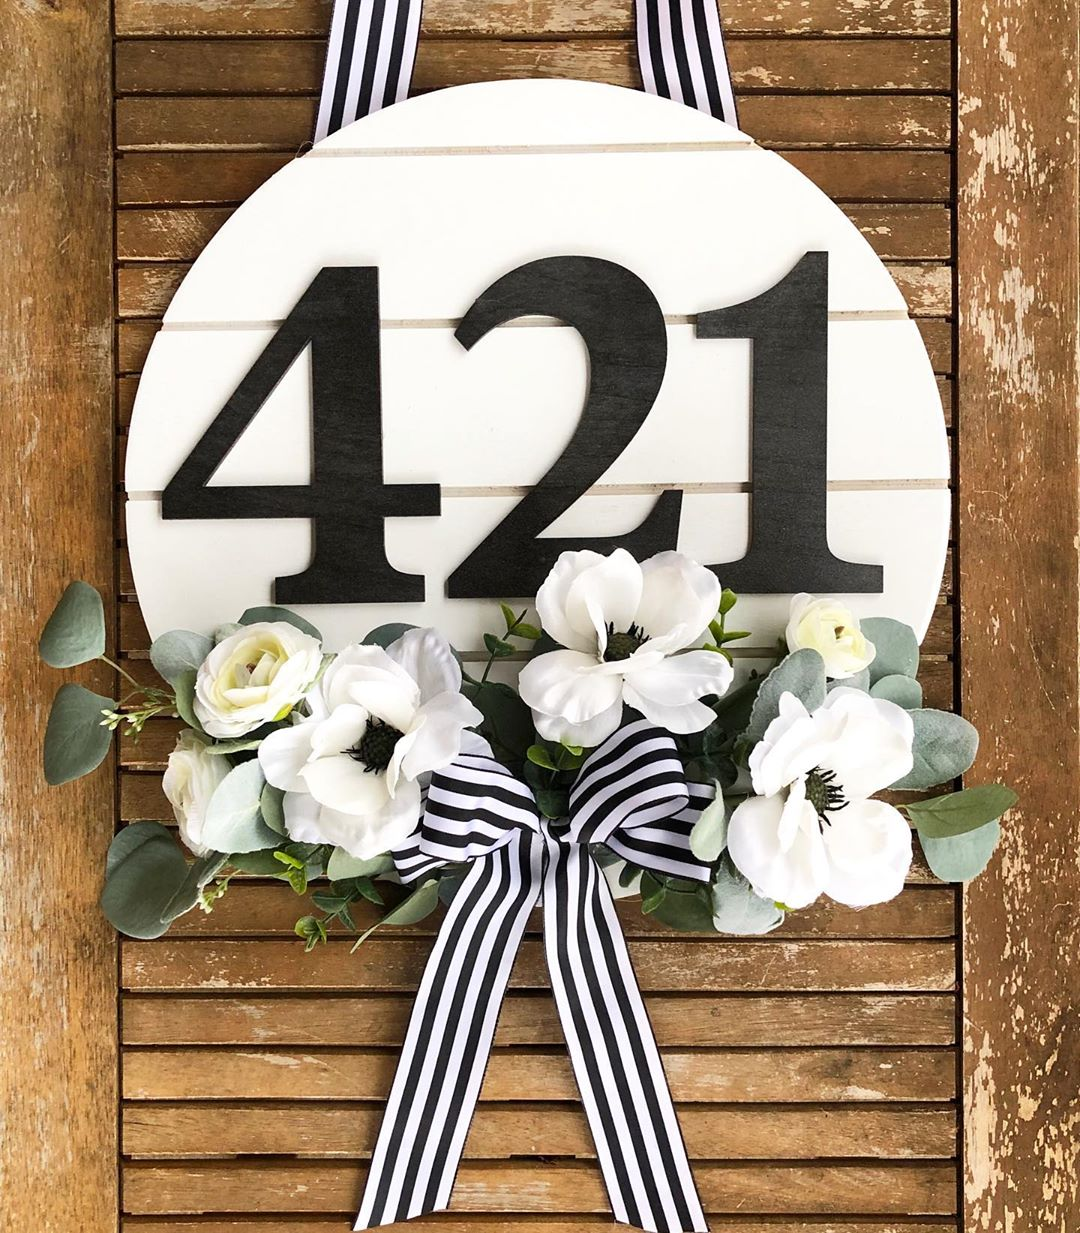 Rustic Decor Wreath for Front Door Year Round with Monogram Hi Hydrangea Wreath for Summer All Season Monogrammed Wreath for Front Door